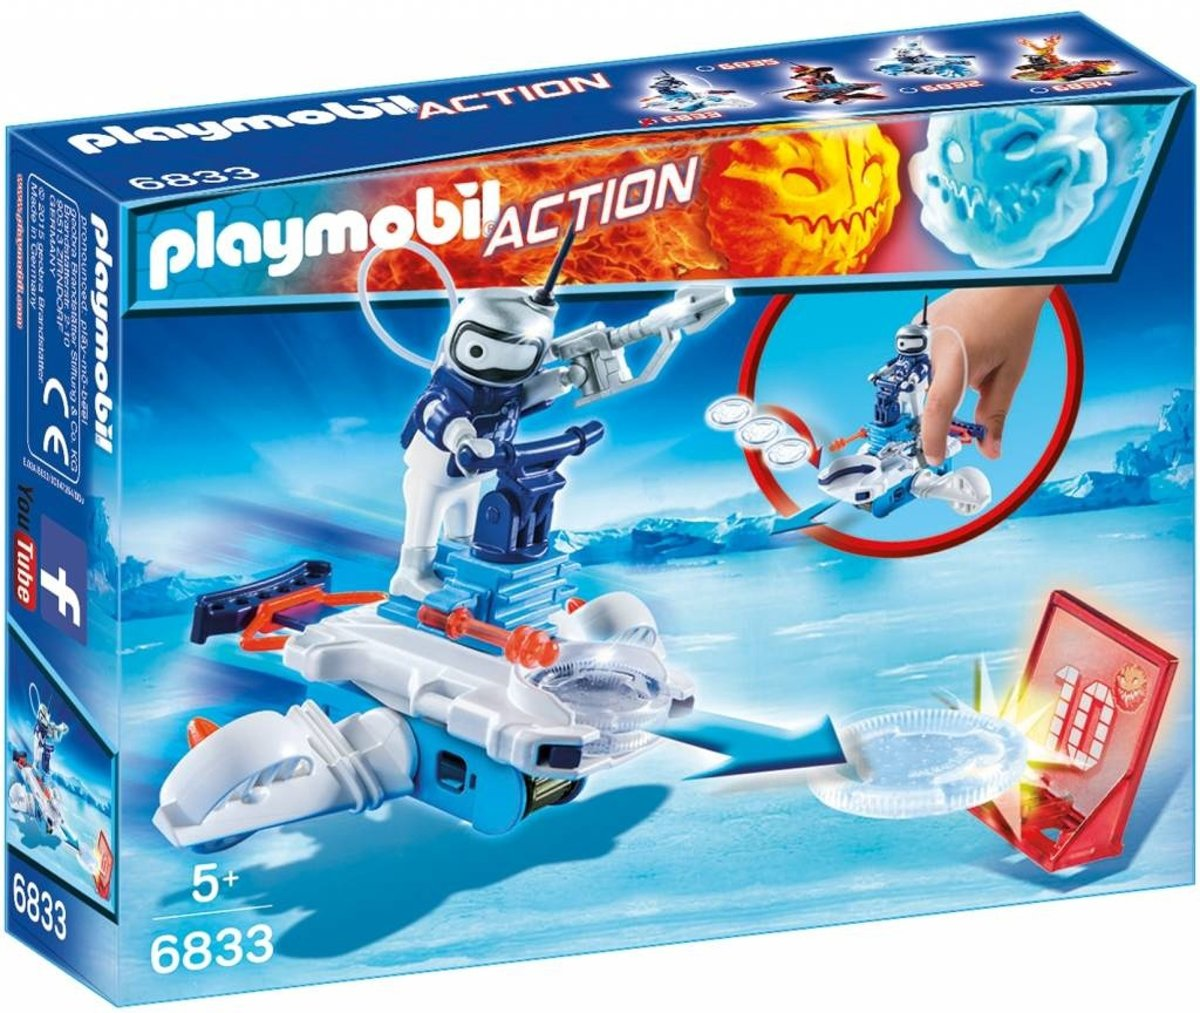 Playmobil Action Icebot Met Disc-shooter (6833)